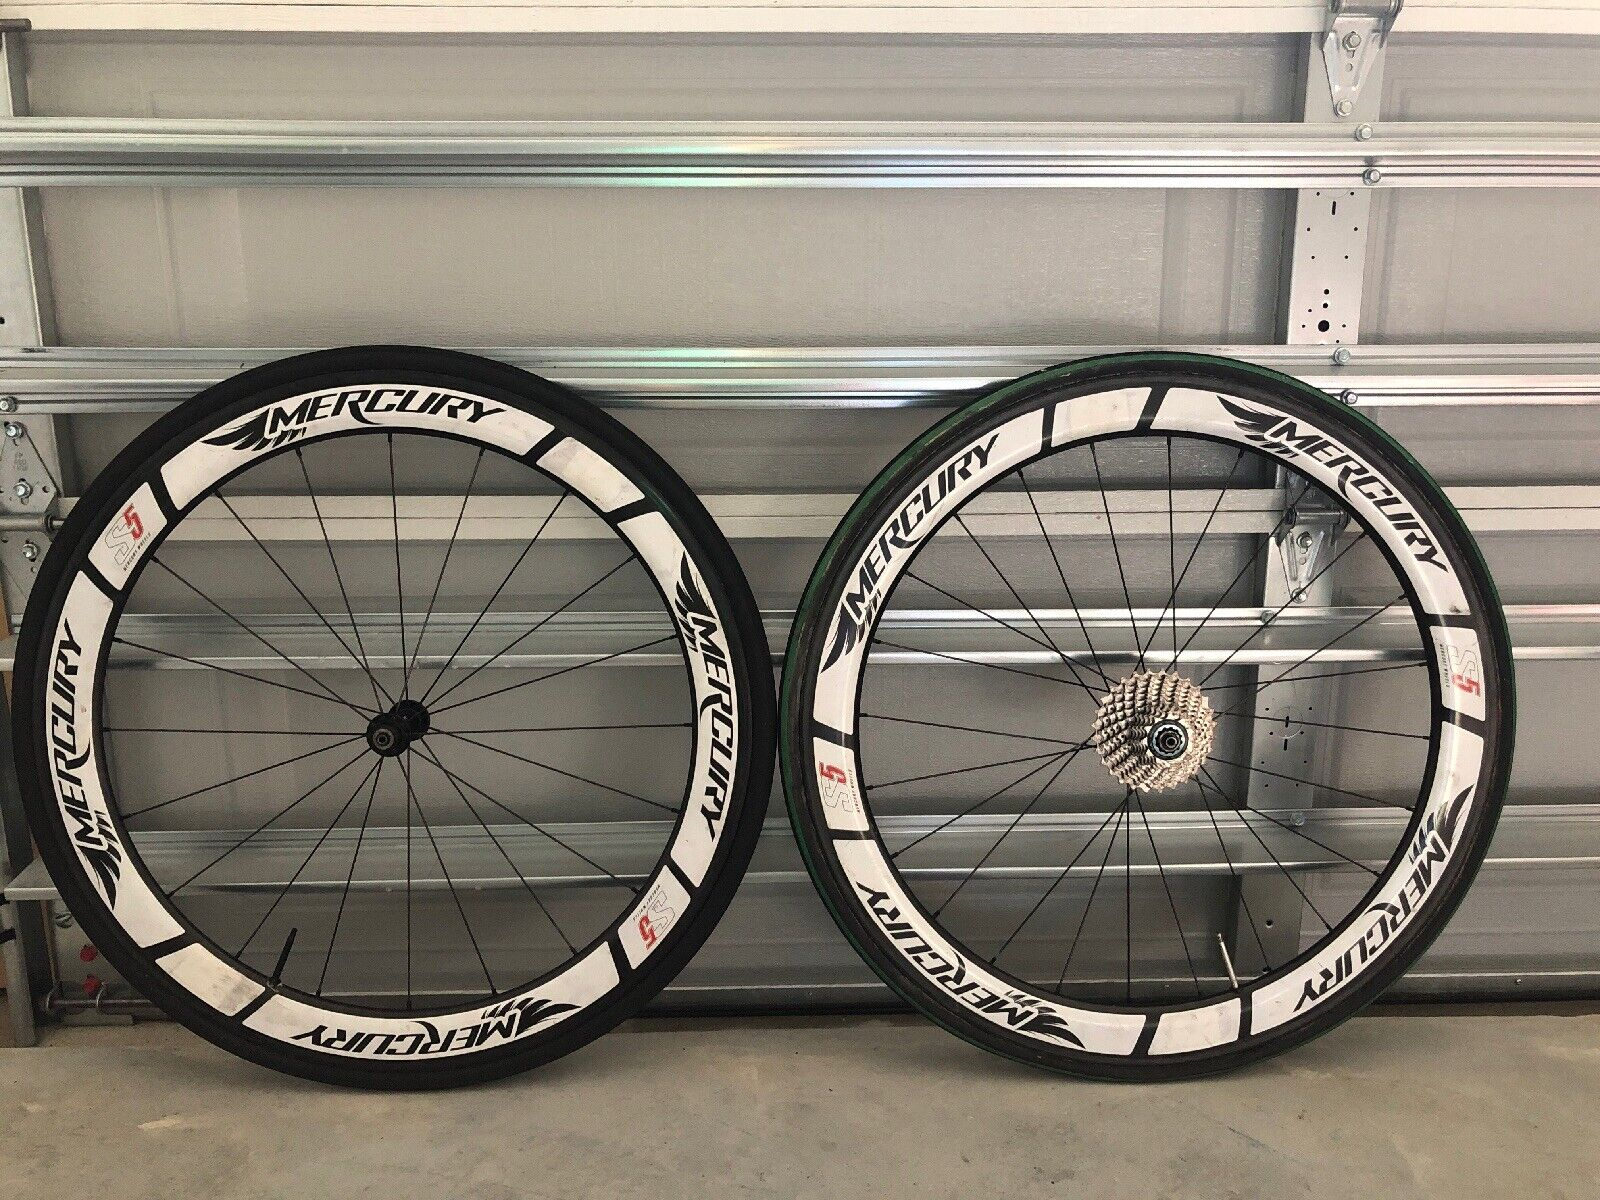 Mercury S5 Tubular Wheelset 700c